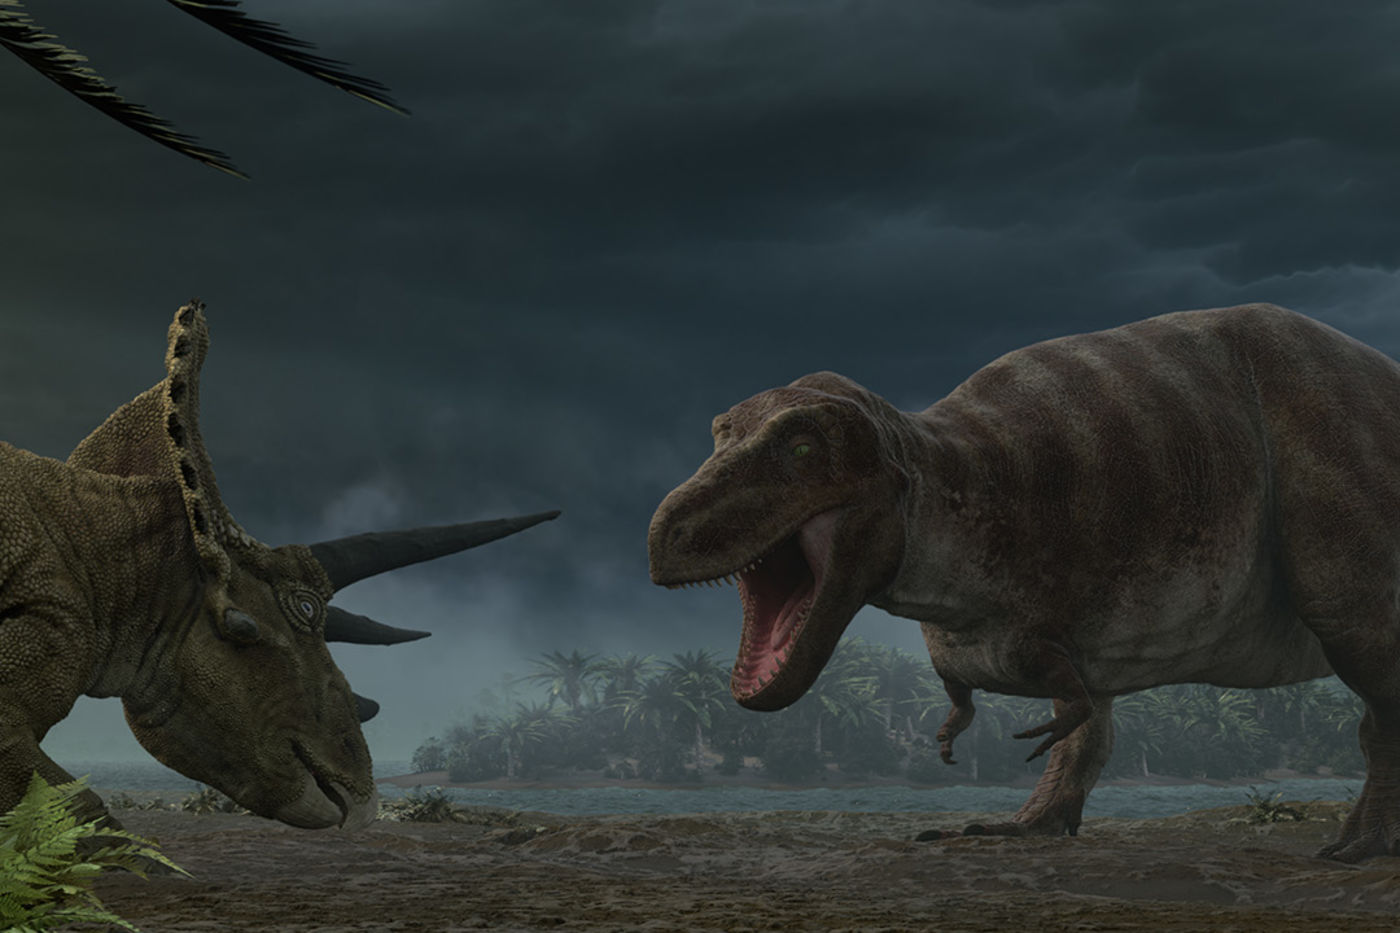 An animated image of a T. rex facing off against a triceratops on a river bed.